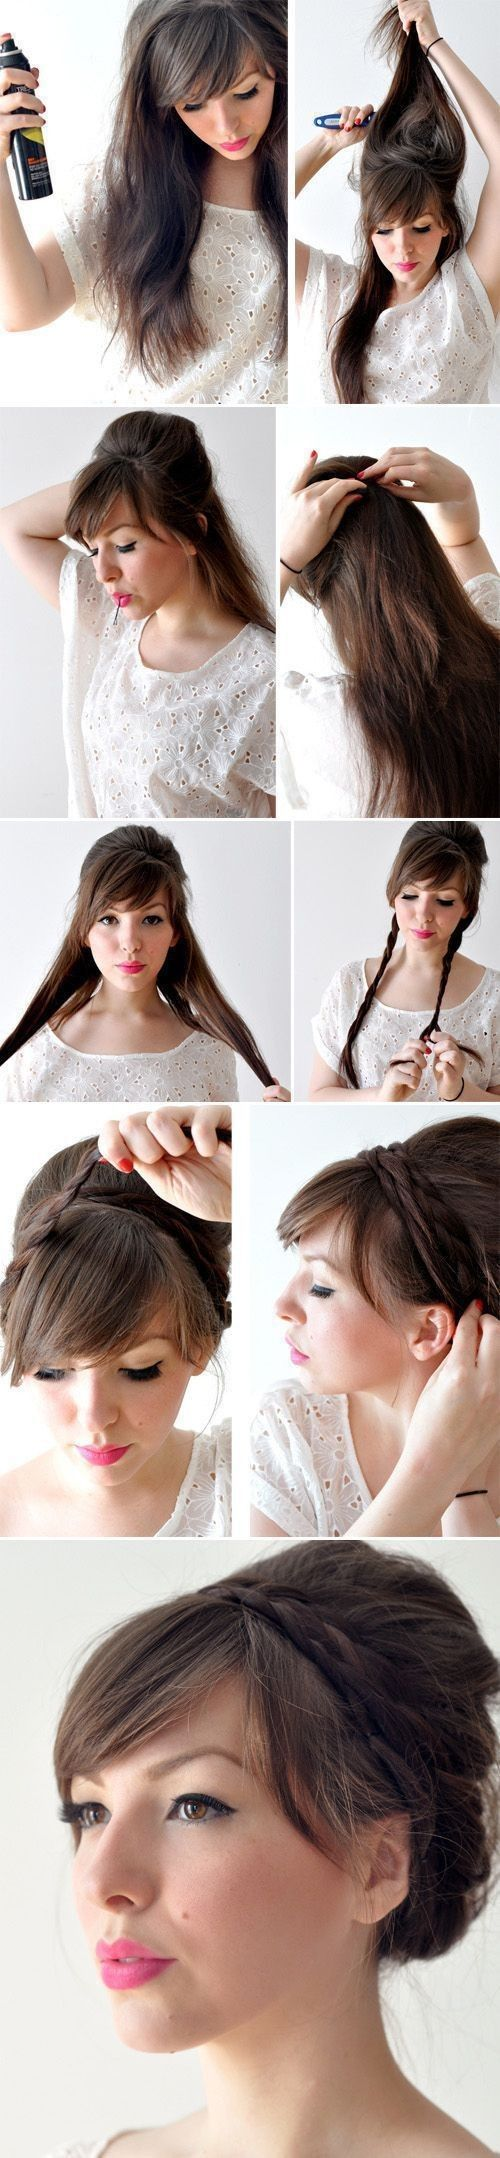 Easy to do hairstyles easy step by step hairstyles hair and